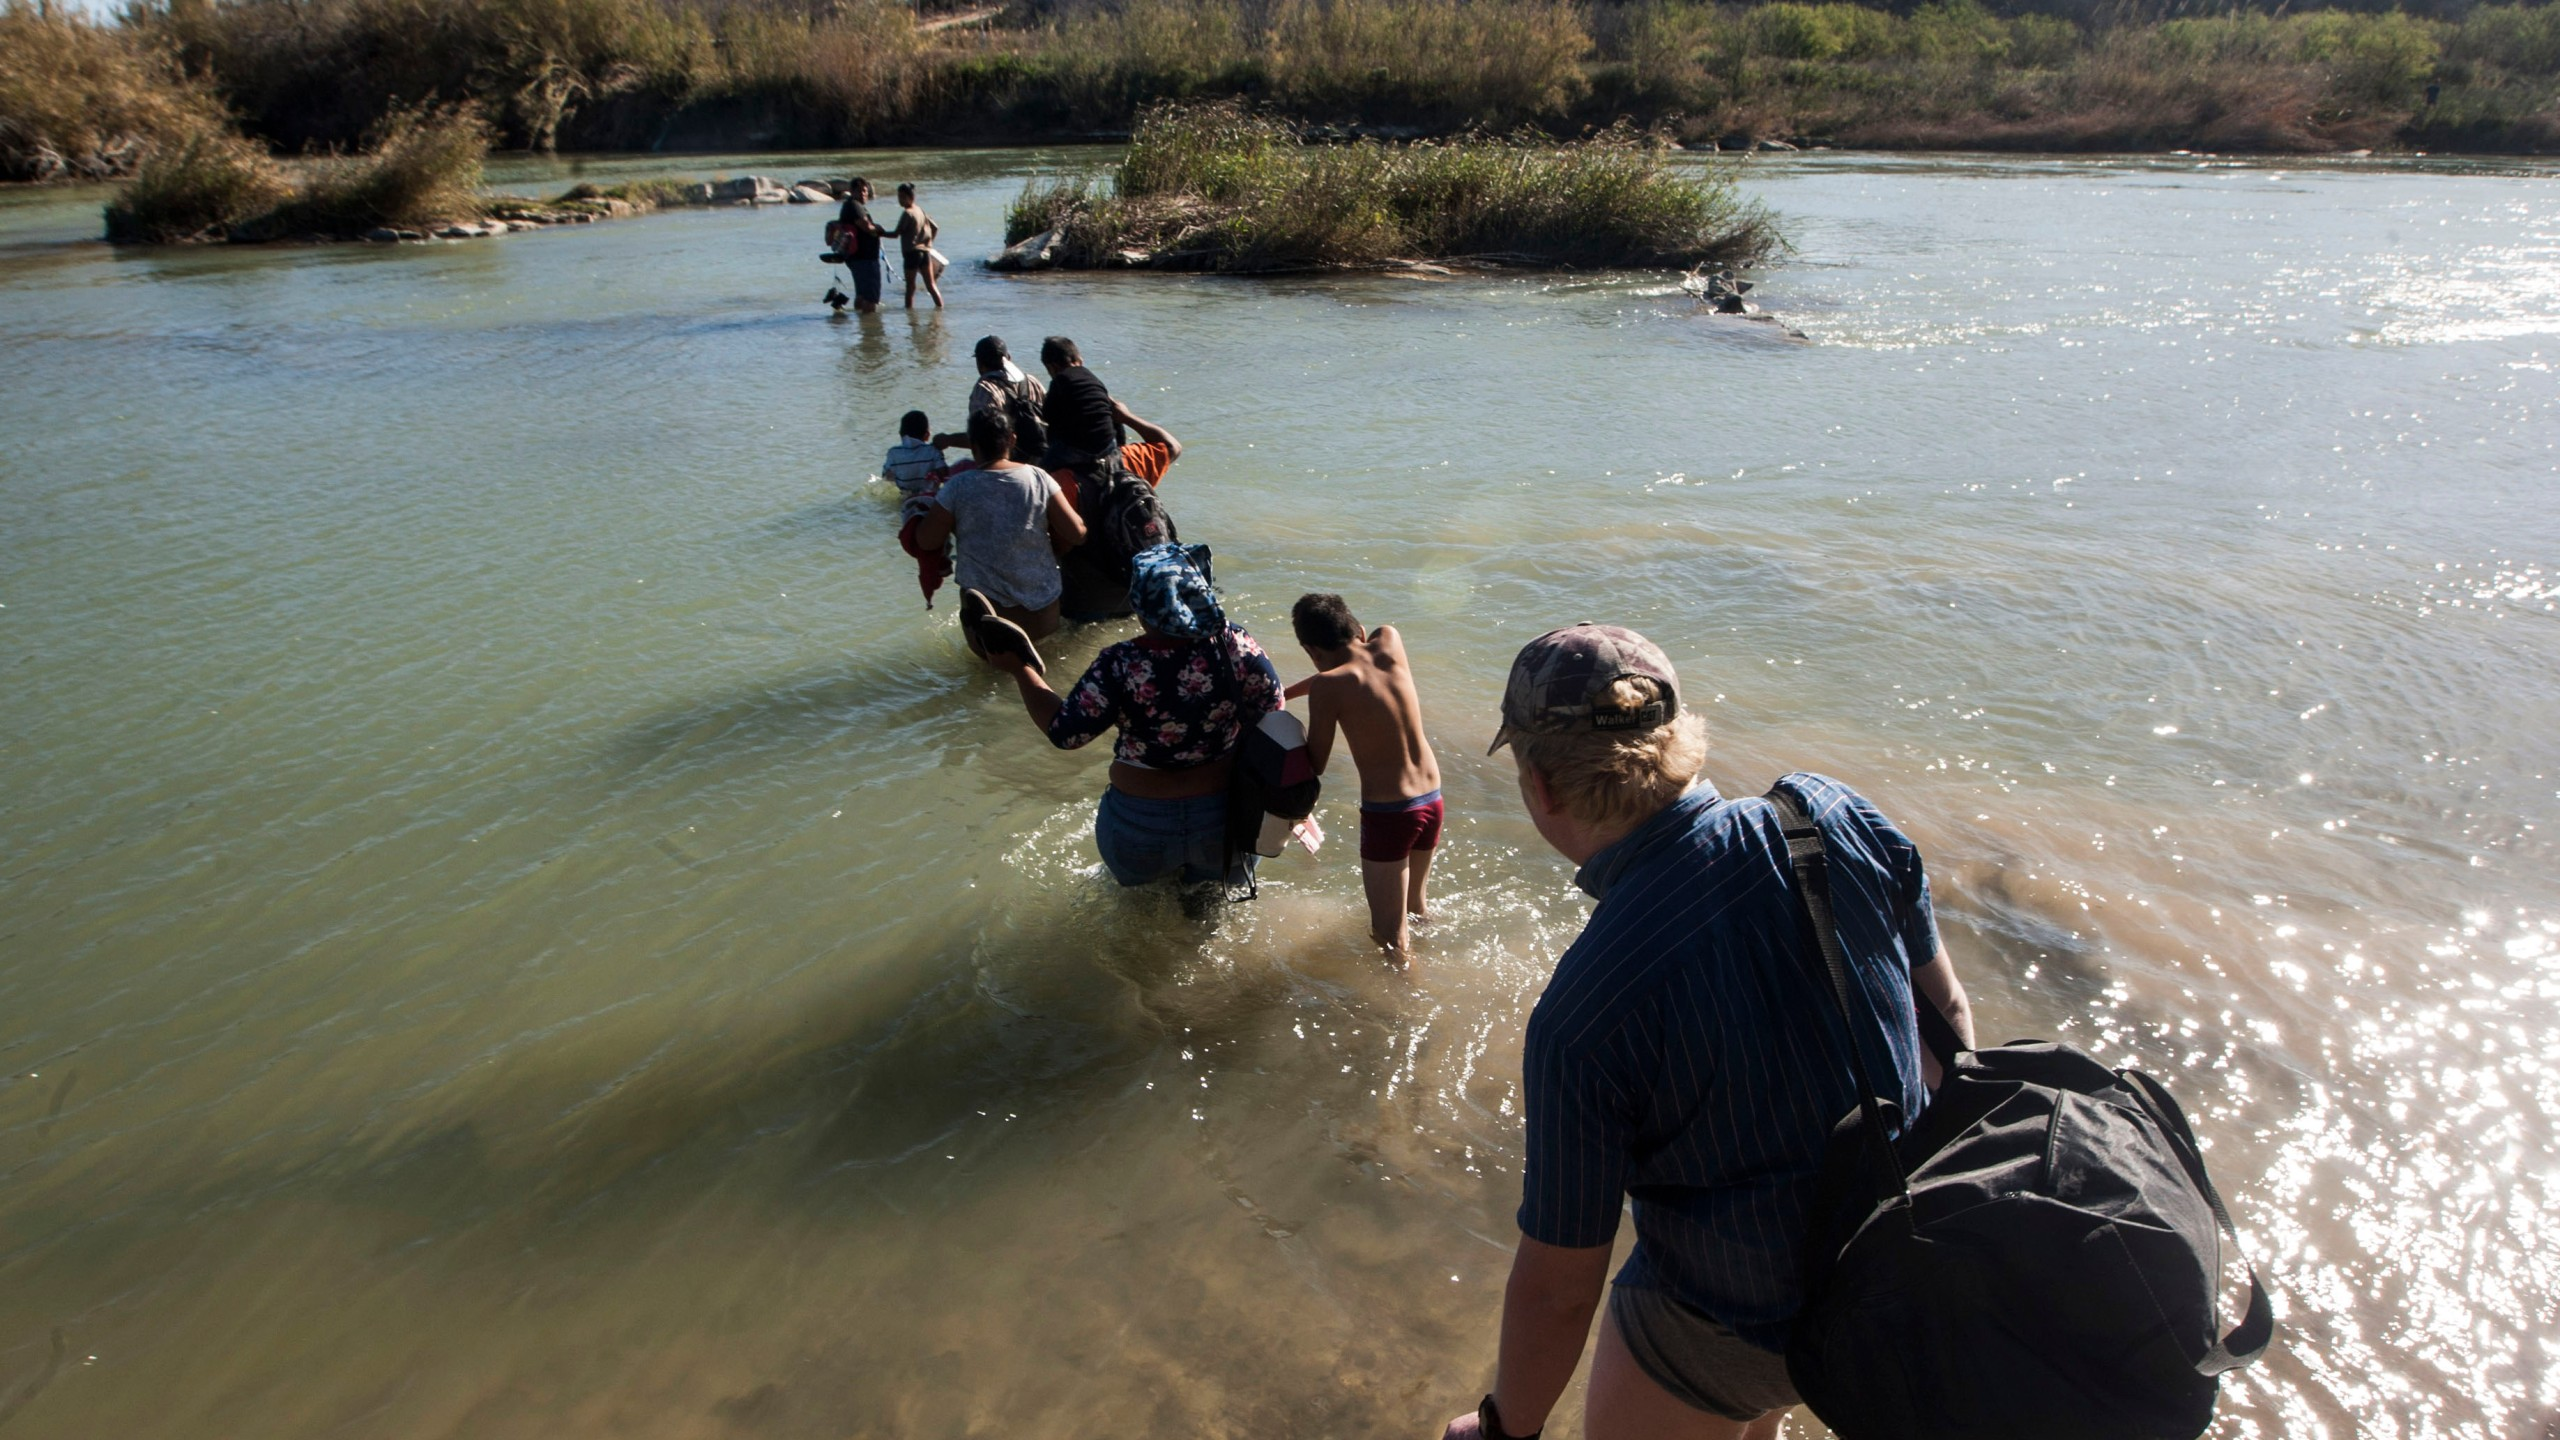 Central American migrants try to cross the Rio Bravo, from Piedras Negras, in Coahuila state, Mexico to the city of Eagle Pass, in Texas, US, as seen from Mexico on February 17, 2019. (Credit: Julio Cesar Aguilar/Getty Images)